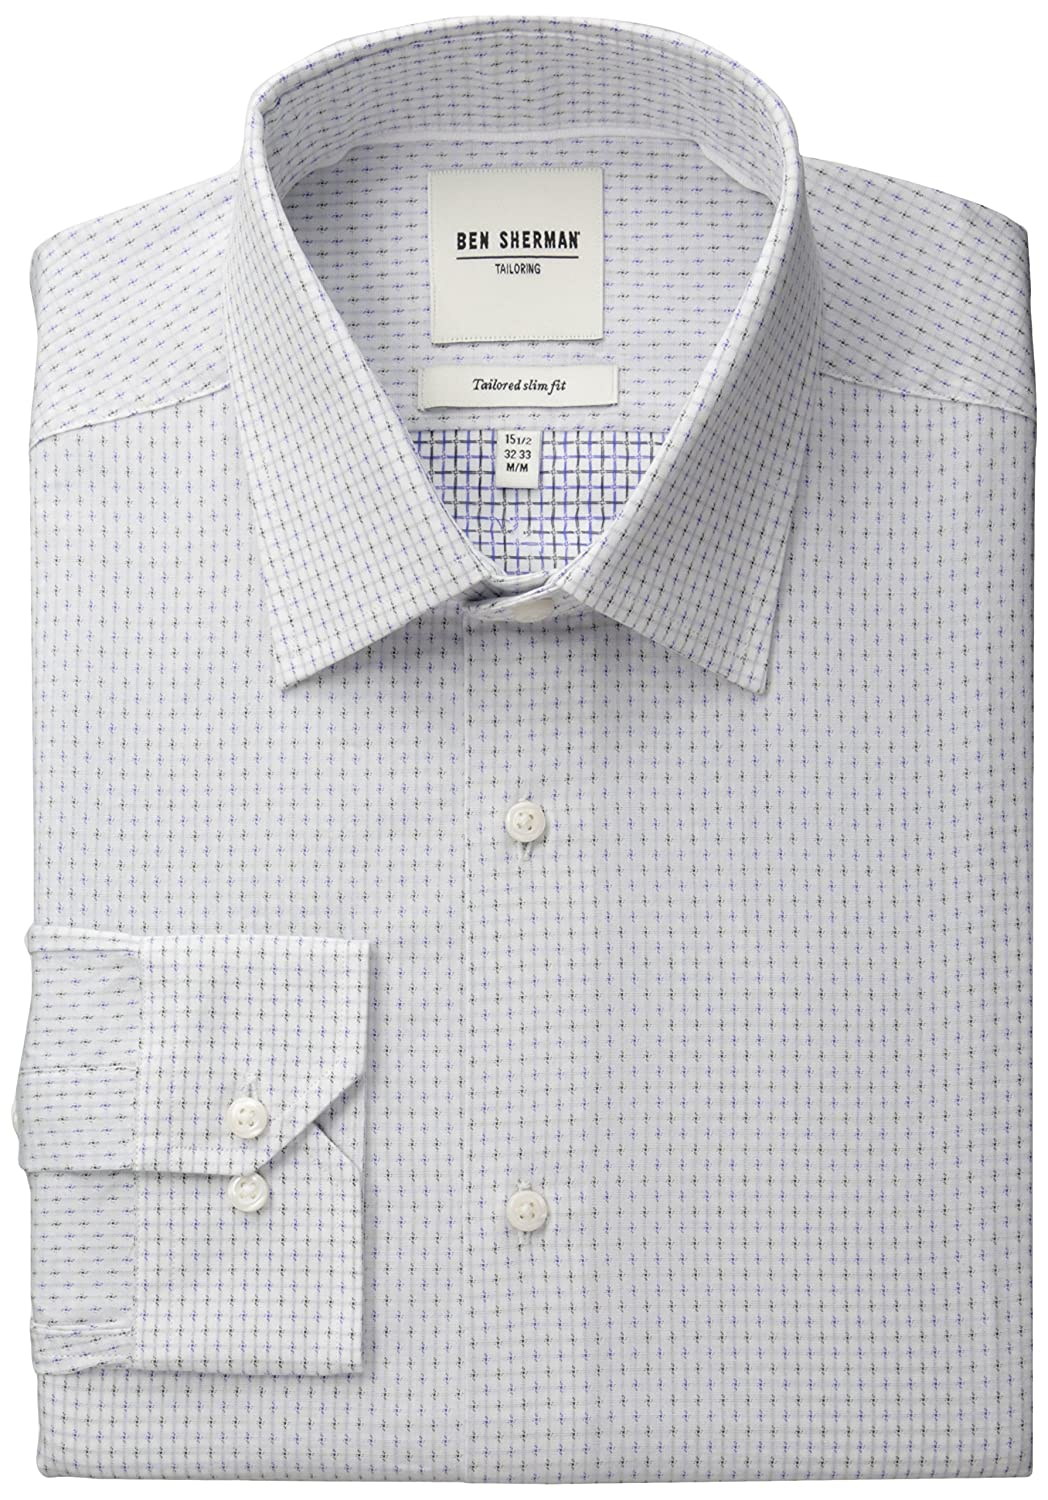 Ben Sherman Men's Blue and White Dobby Check